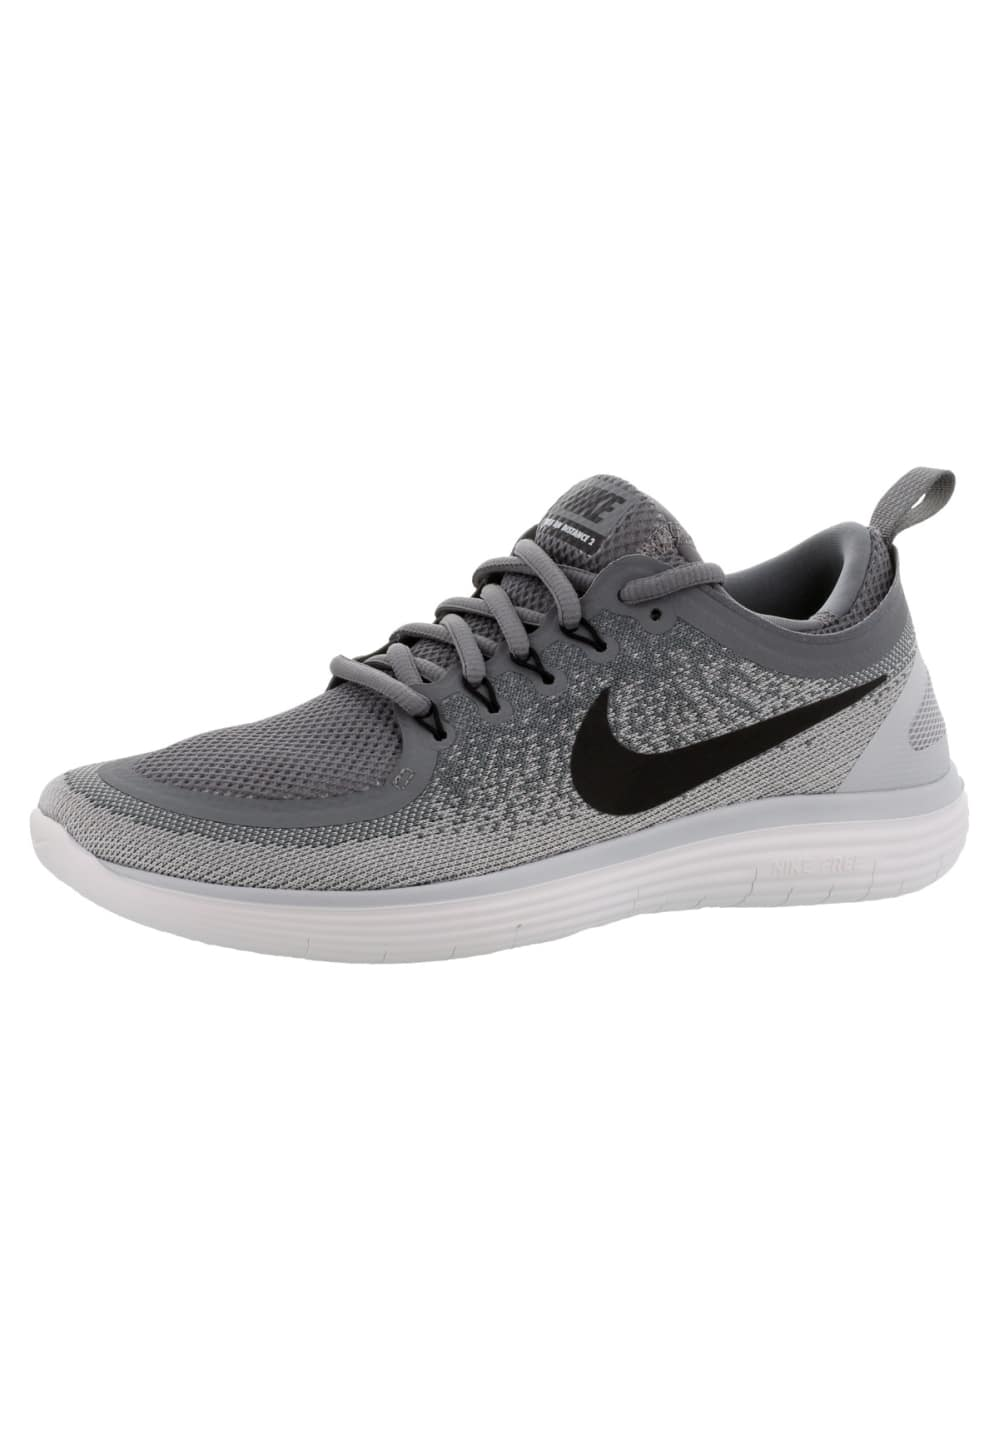 d9d4a5f30ff5 Next. -60%. Nike. Free RN Distance 2 - Running shoes for Women. Regular  Price  Save 60% ...